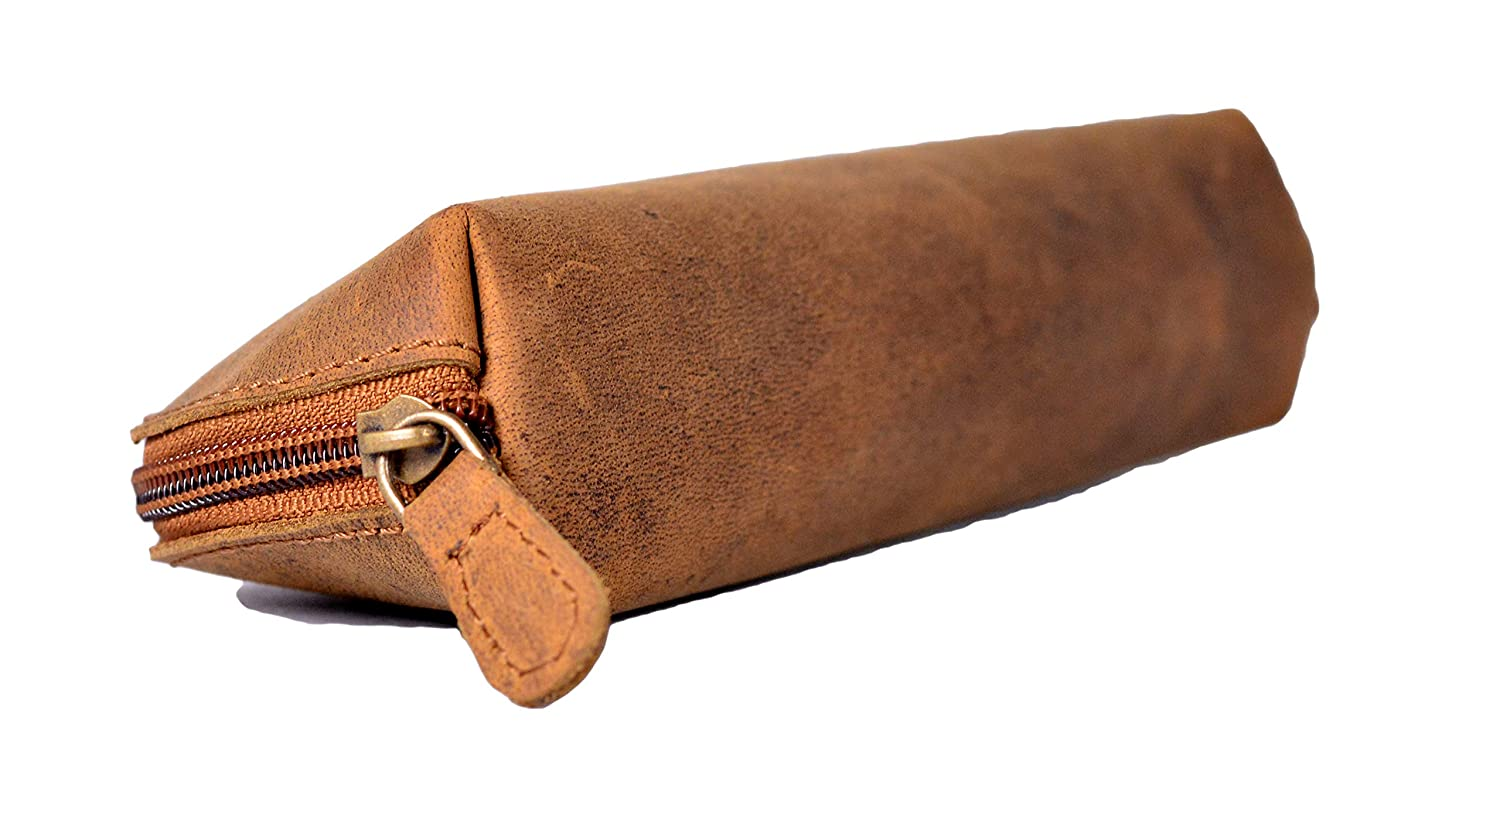 Color Brown JAYSS HIDES Stylish Handmade Retro Genuine Leather Soft Pouch for Pencil//Makeup//Mobile